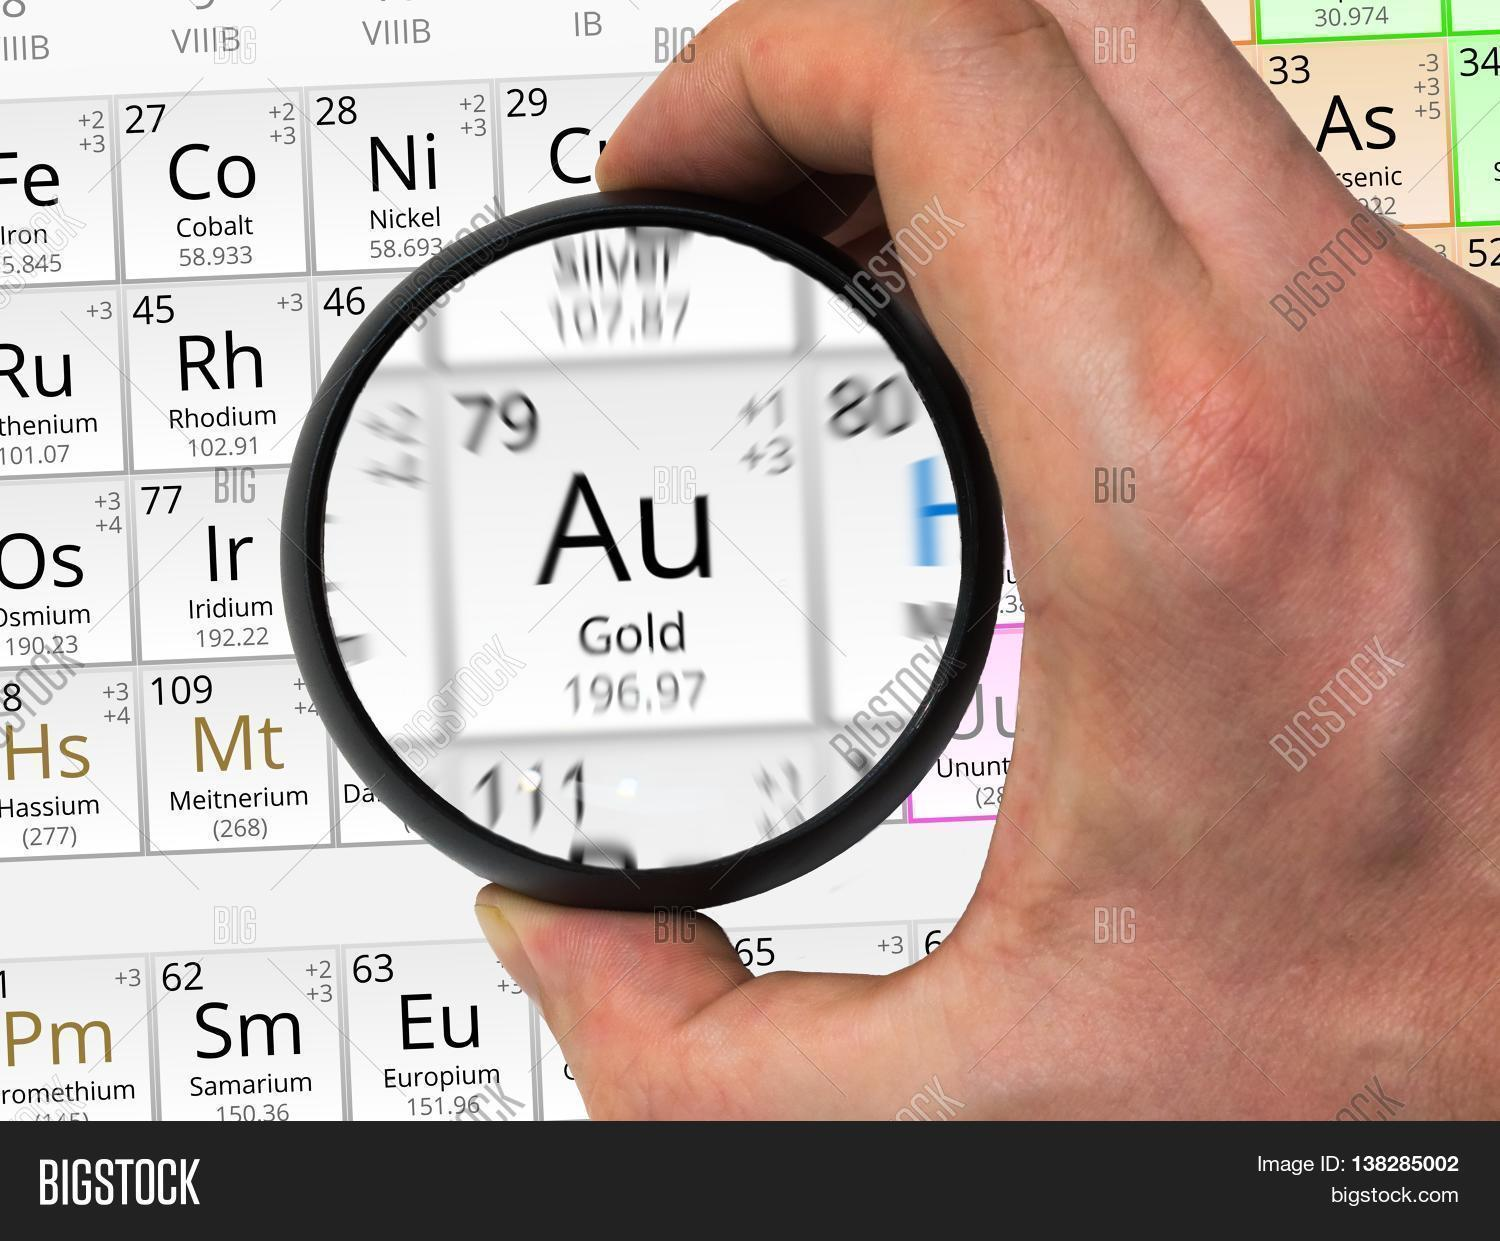 Symbol for gold periodic table image collections periodic table gold symbol au element periodic image photo bigstock gold symbol au element of the periodic table gamestrikefo Images